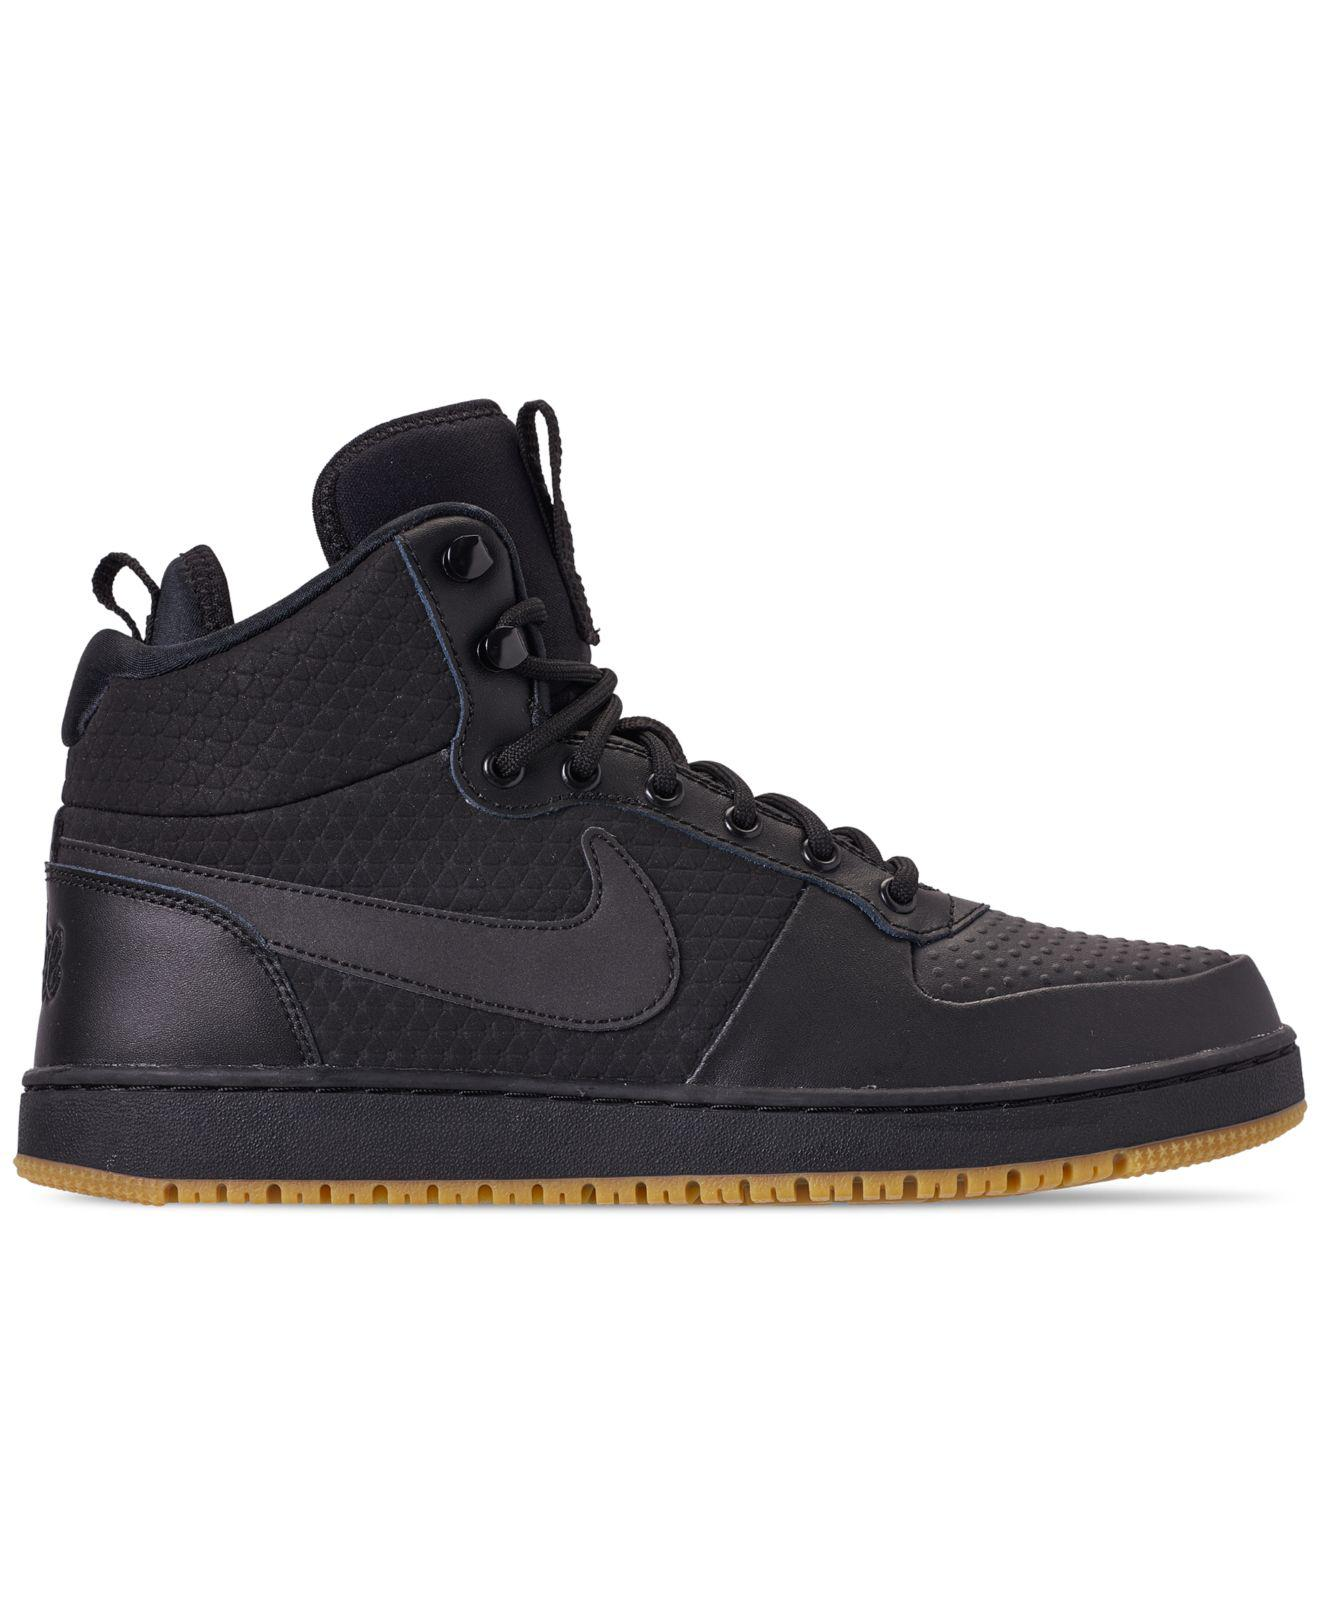 689a0d2bd39 Lyst - Nike Ebernon Mid Winter Casual Sneakers From Finish Line in Black  for Men - Save 26%